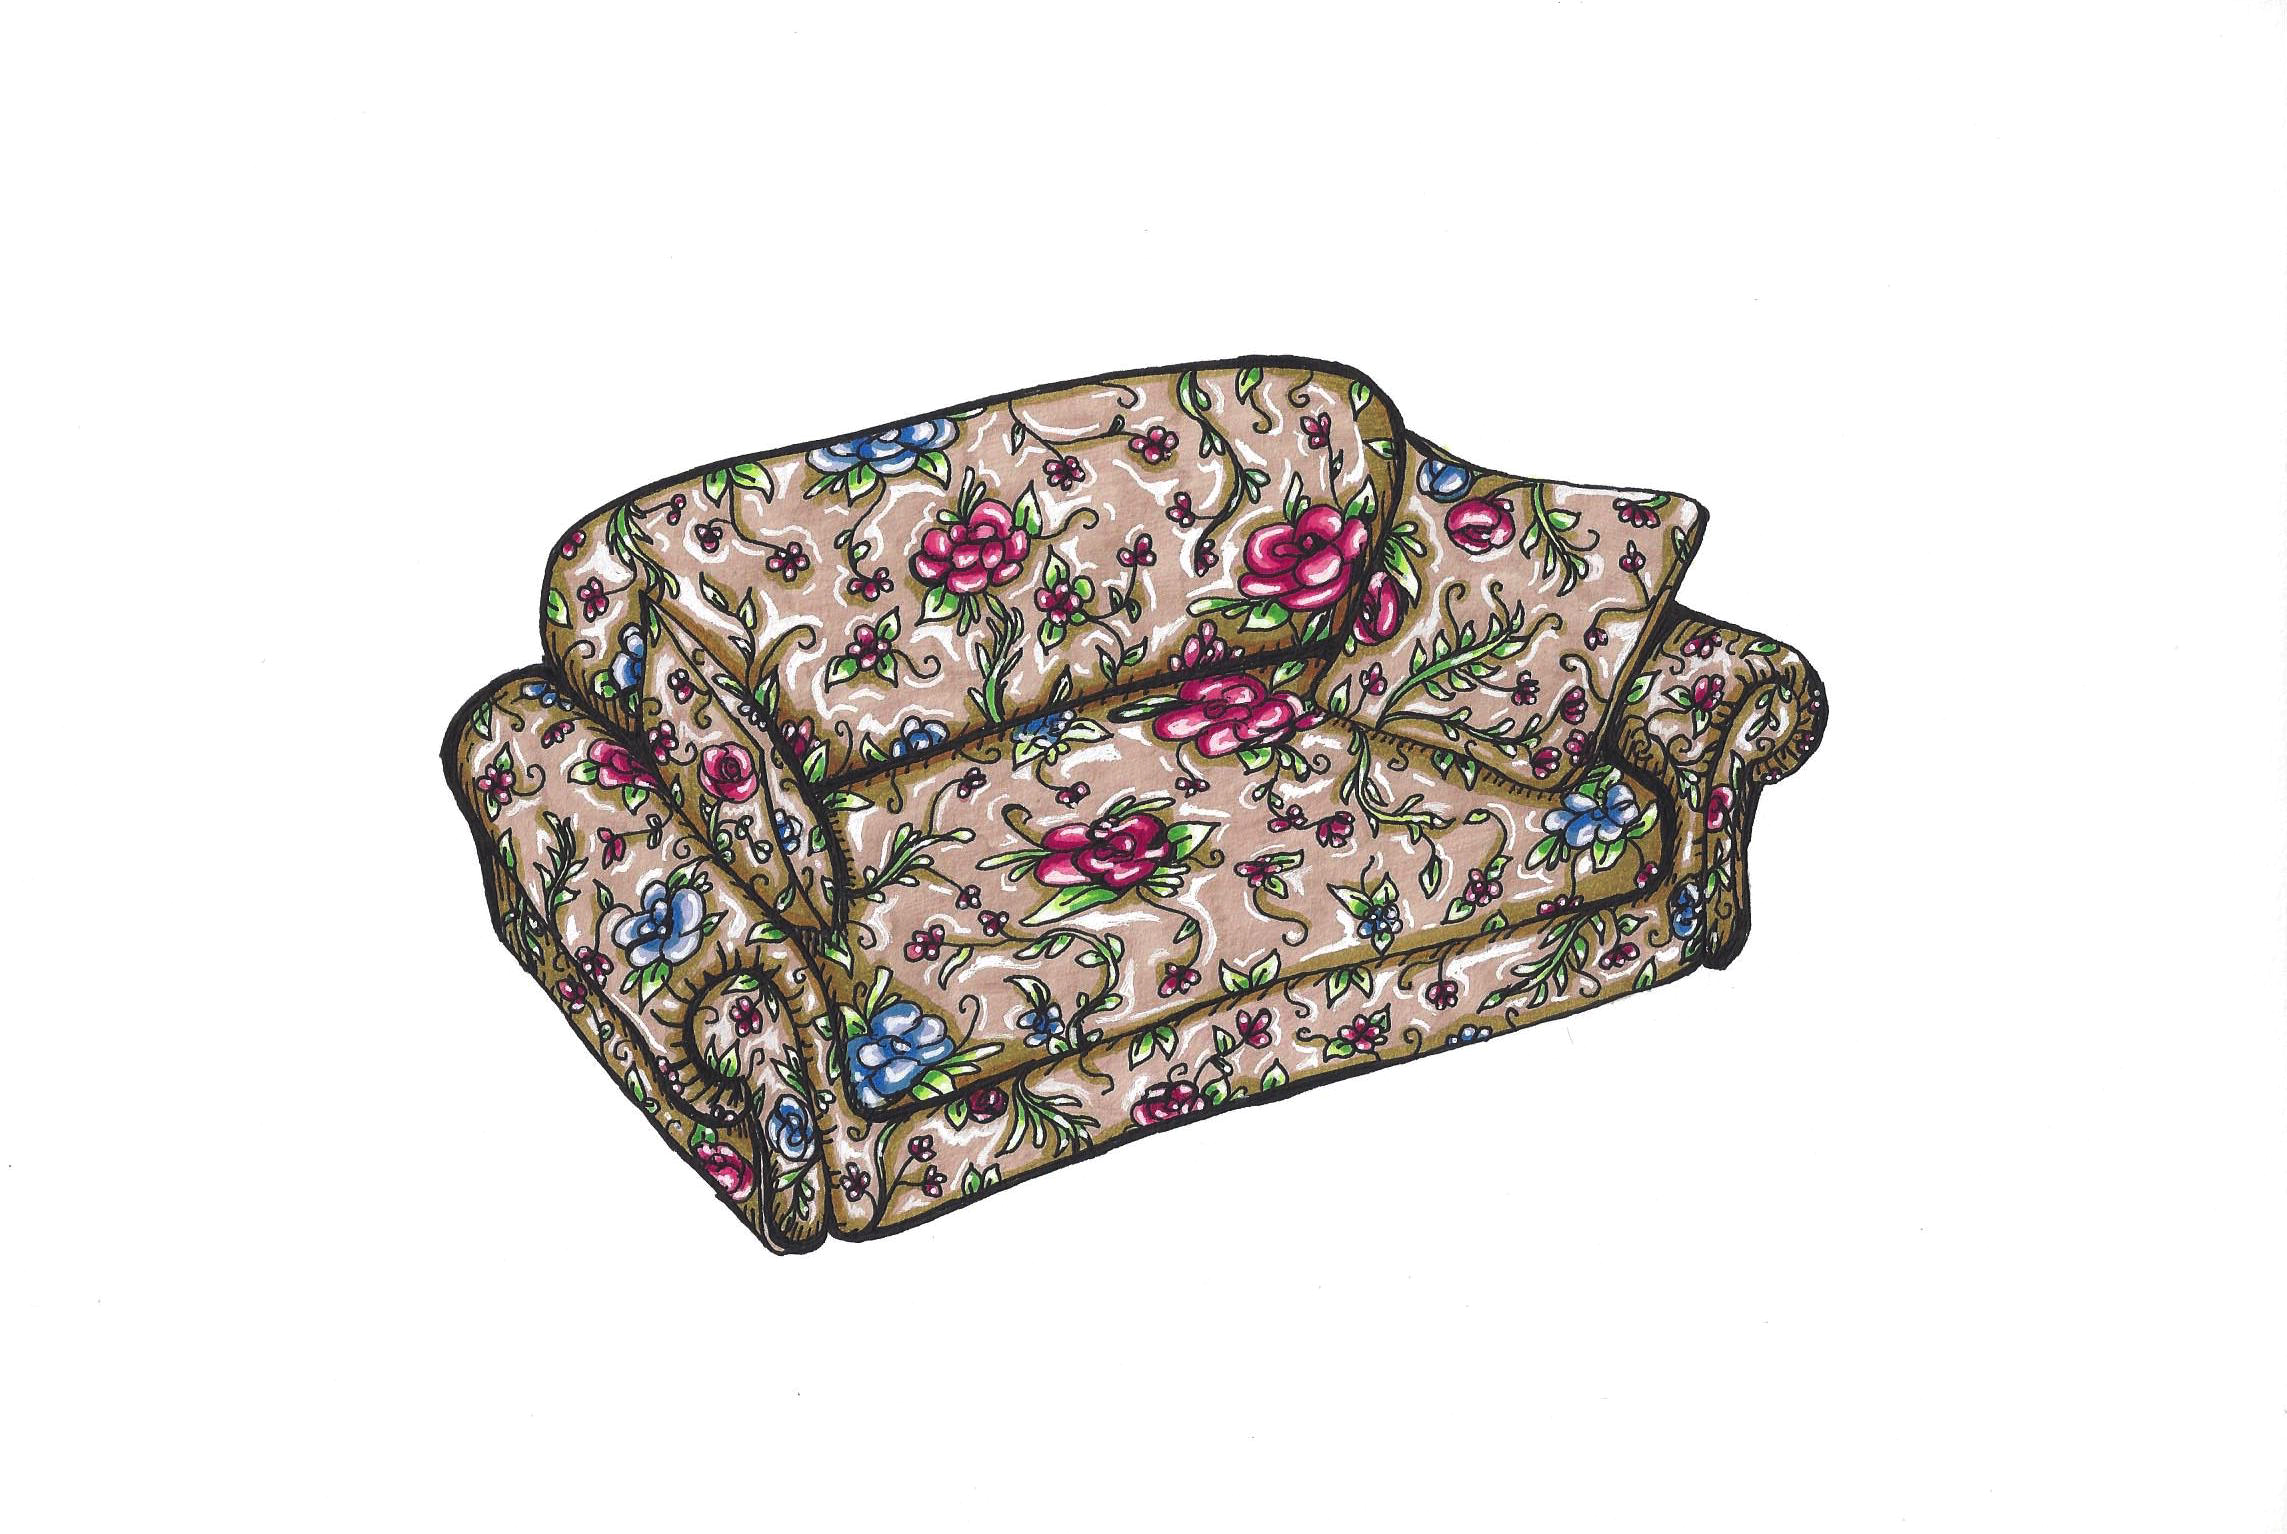 Nana's Floral Couch